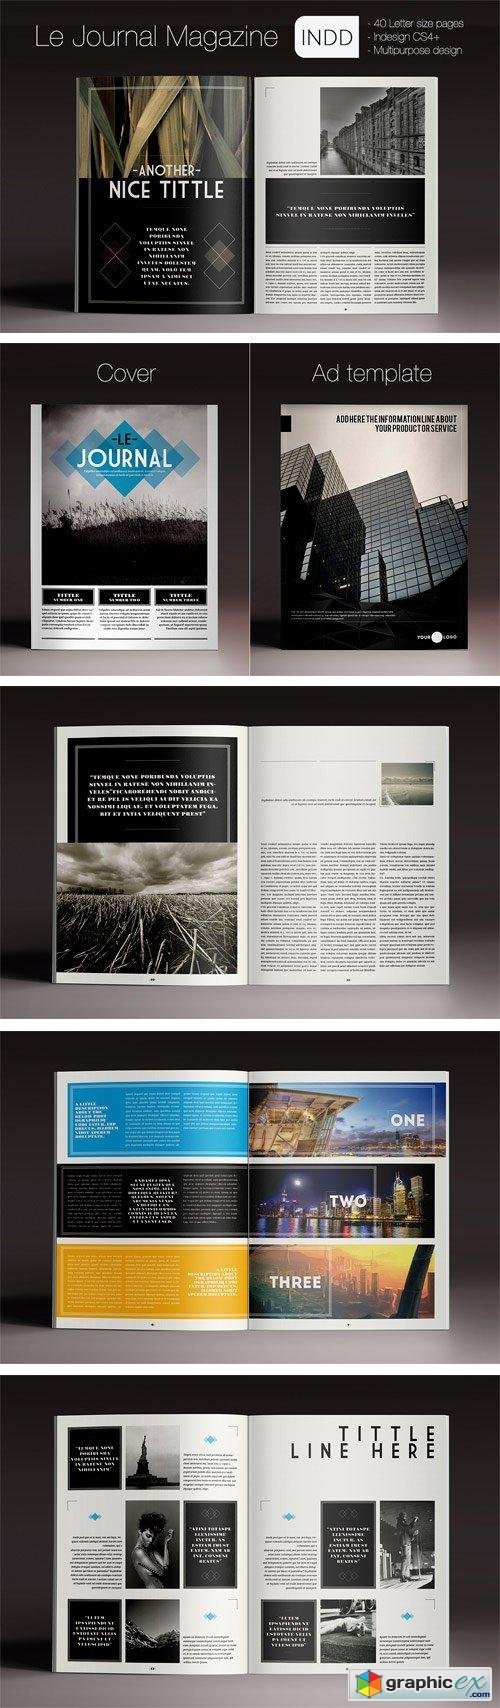 Indesign Template Le Journal Magazine